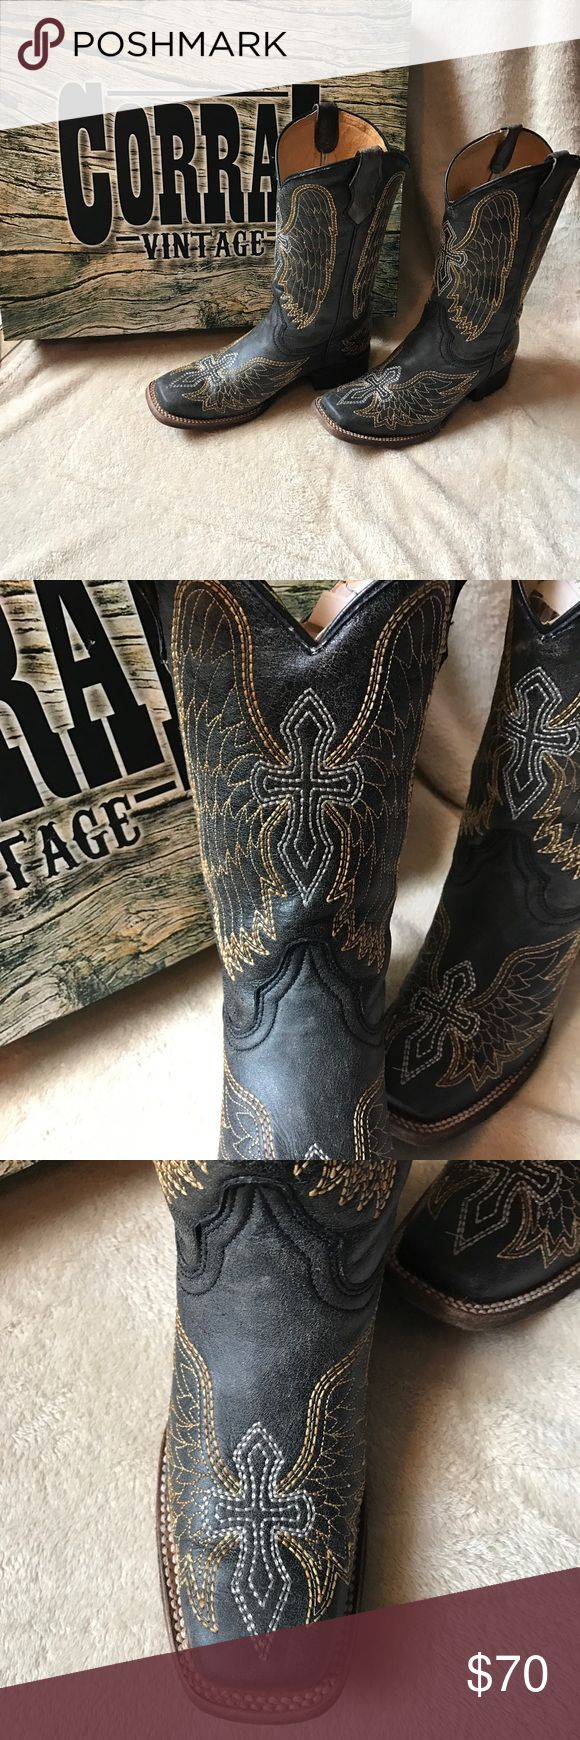 Corral vintage cowgirl boots Coral vintage cowgirl boots with cross and wing prints in perfect condition only used 3-4 times Corral Vintage Shoes Boots